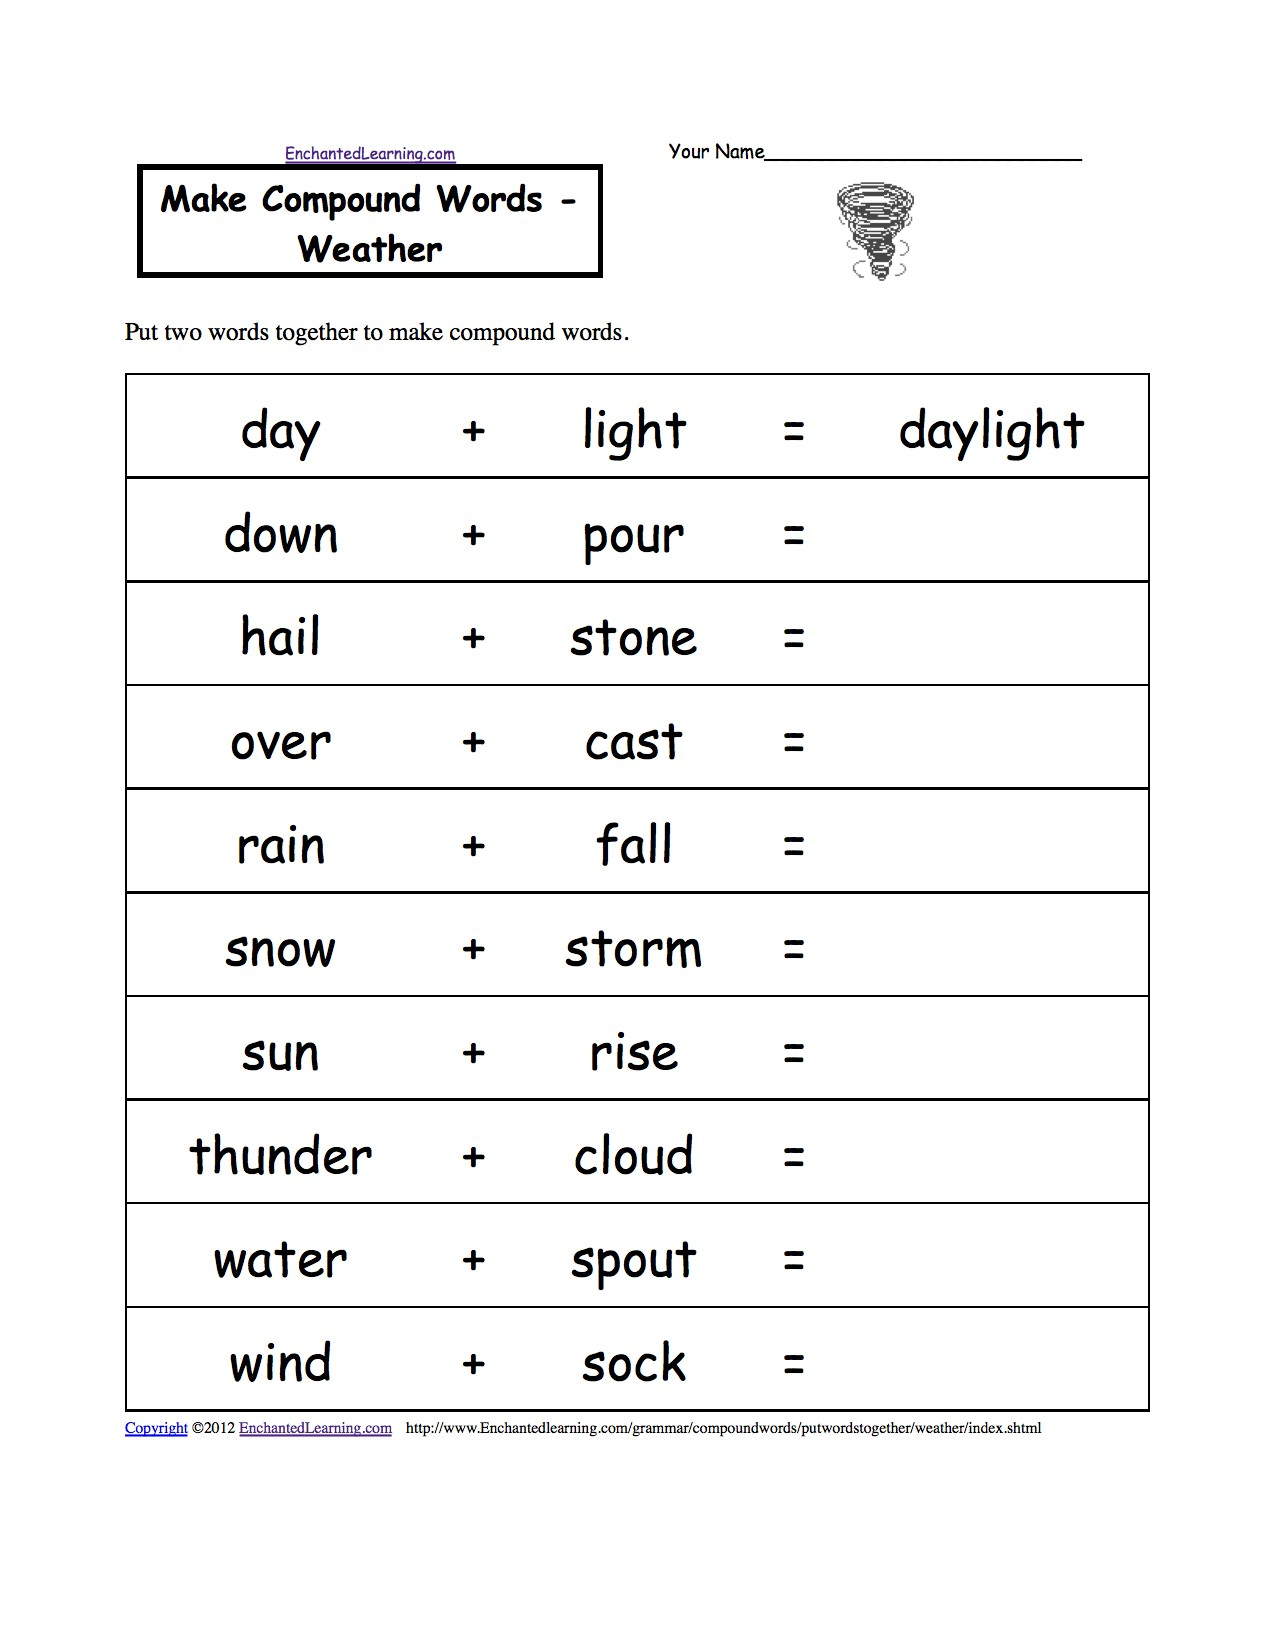 Free Printable Science Worksheets For 2Nd Grade – Worksheet Template - Free Printable Science Worksheets For 2Nd Grade